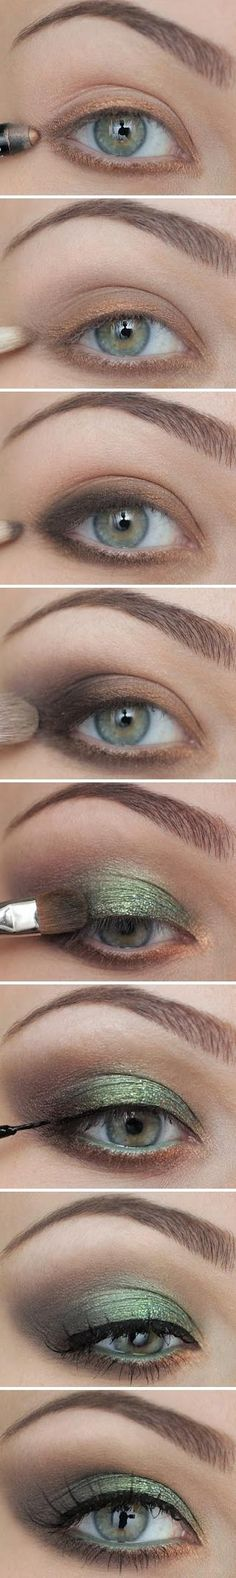 Cool green and brown makeup